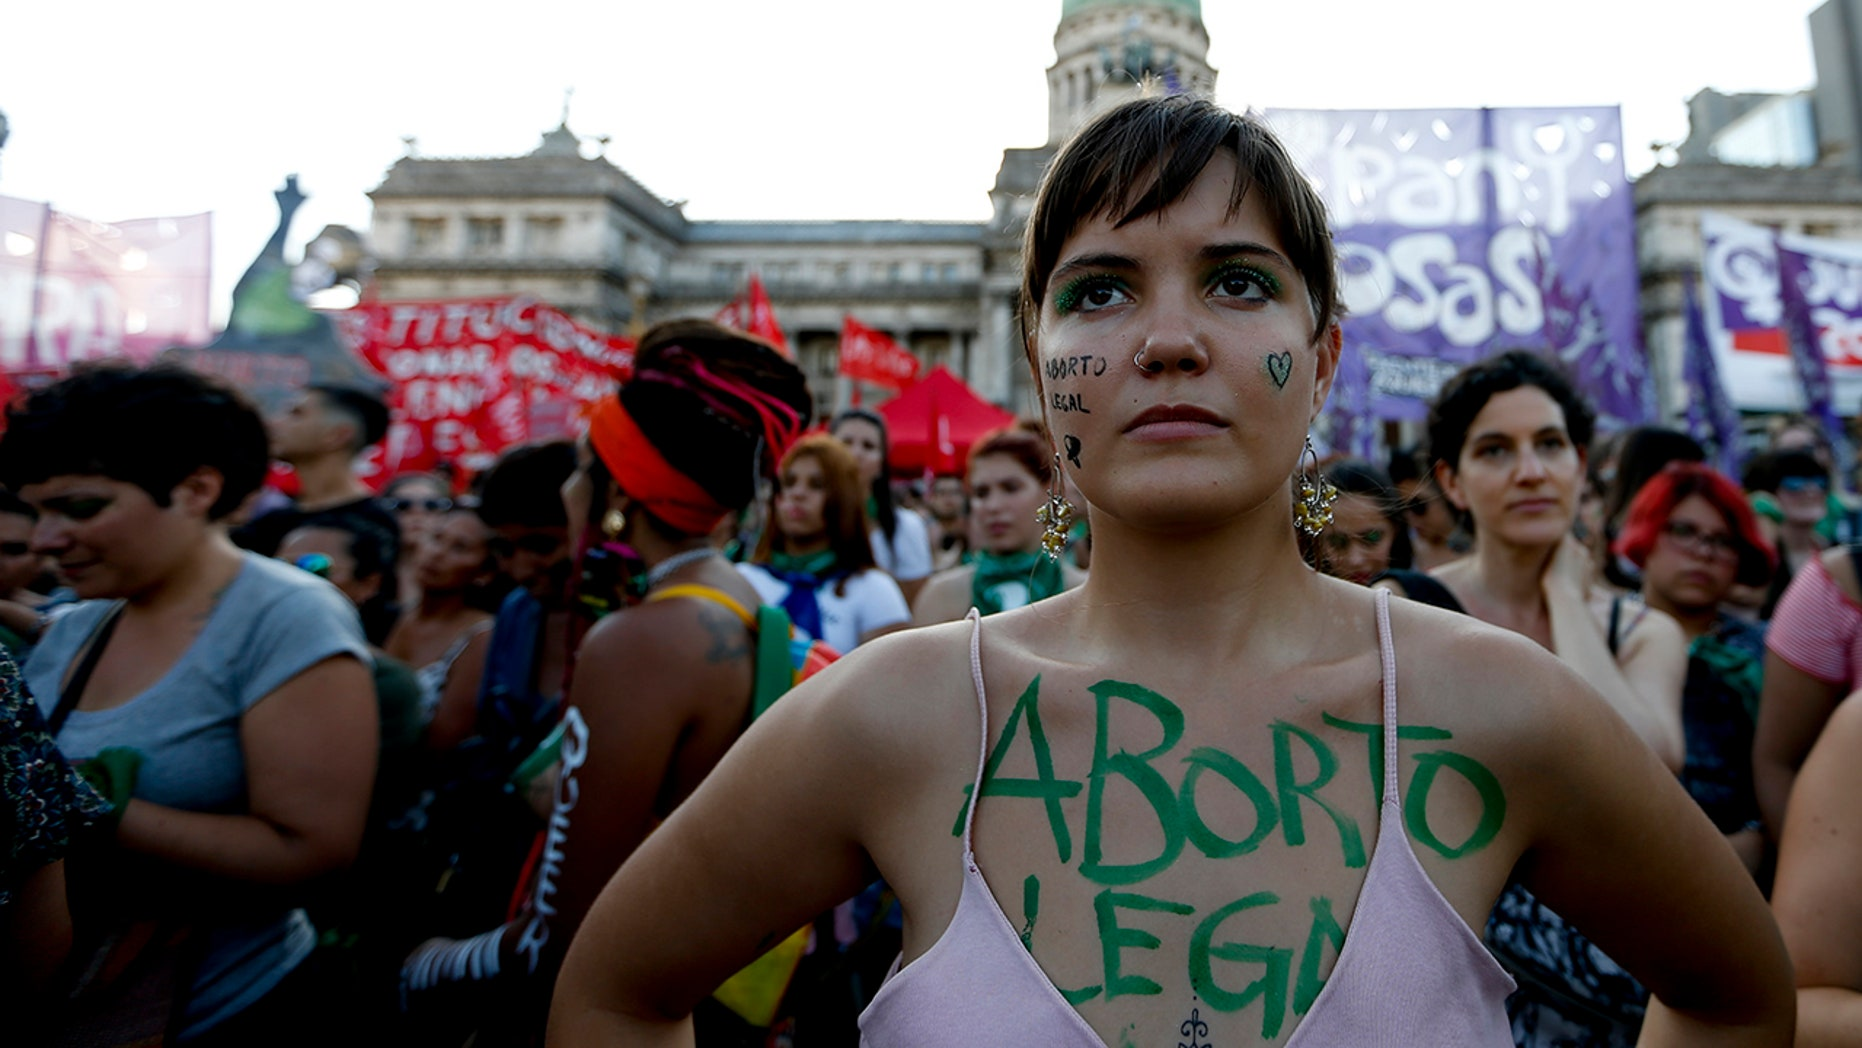 """A woman covered by the Spanish words """"Legal abortion"""" attends a pro-choice rally in favor of decriminalizing abortion outside Congress in Buenos Aires, Argentina, Tuesday, Feb. 19."""